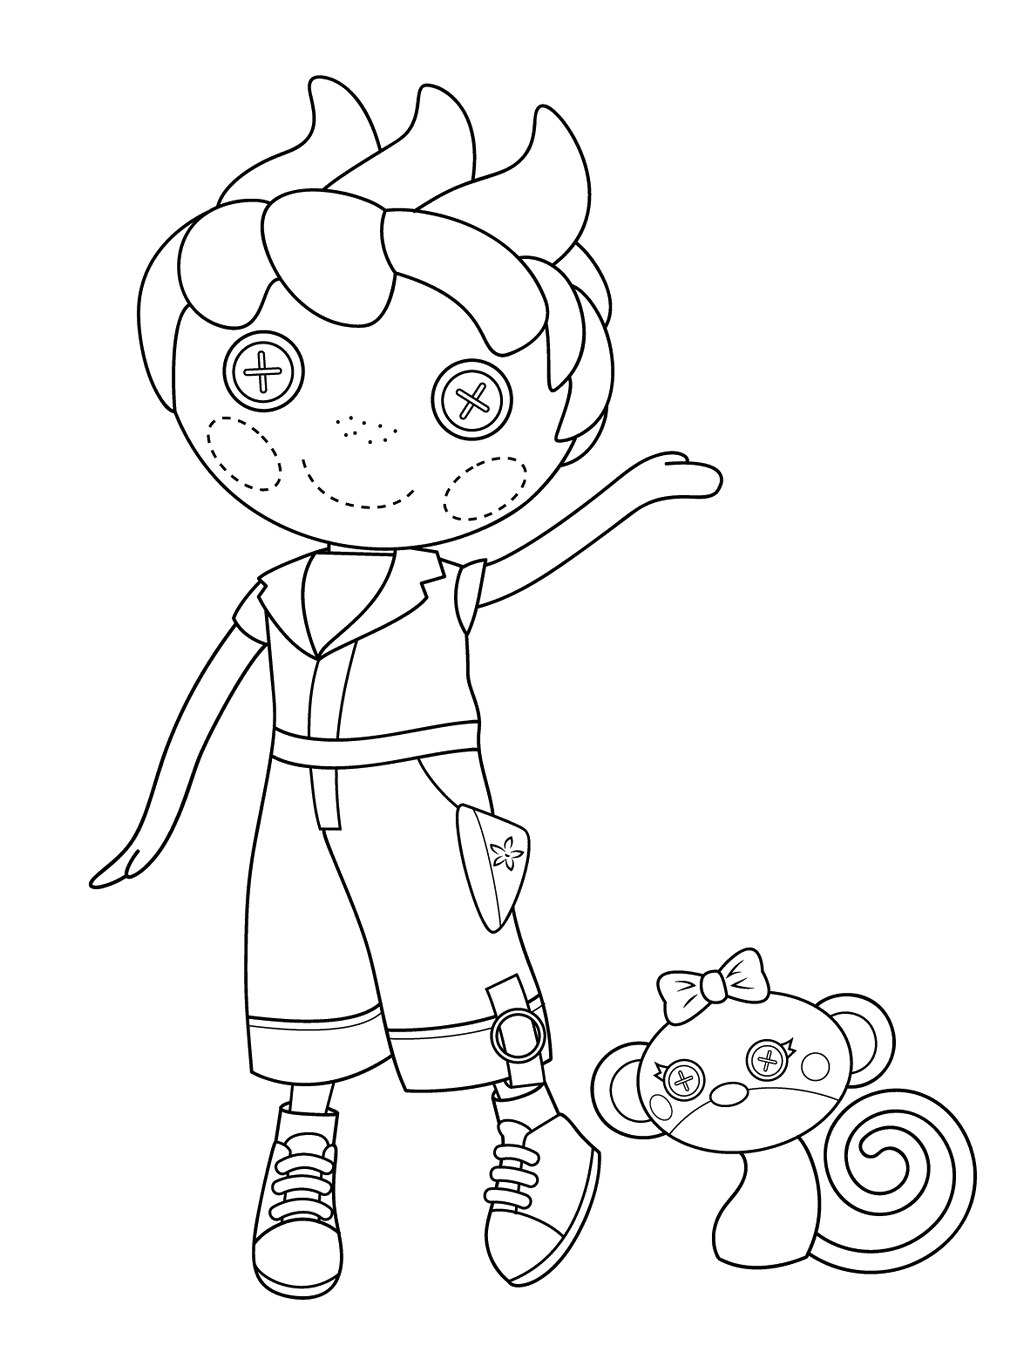 Lalaloopsy and Pet Pals Coloring Pages Coloring Pages